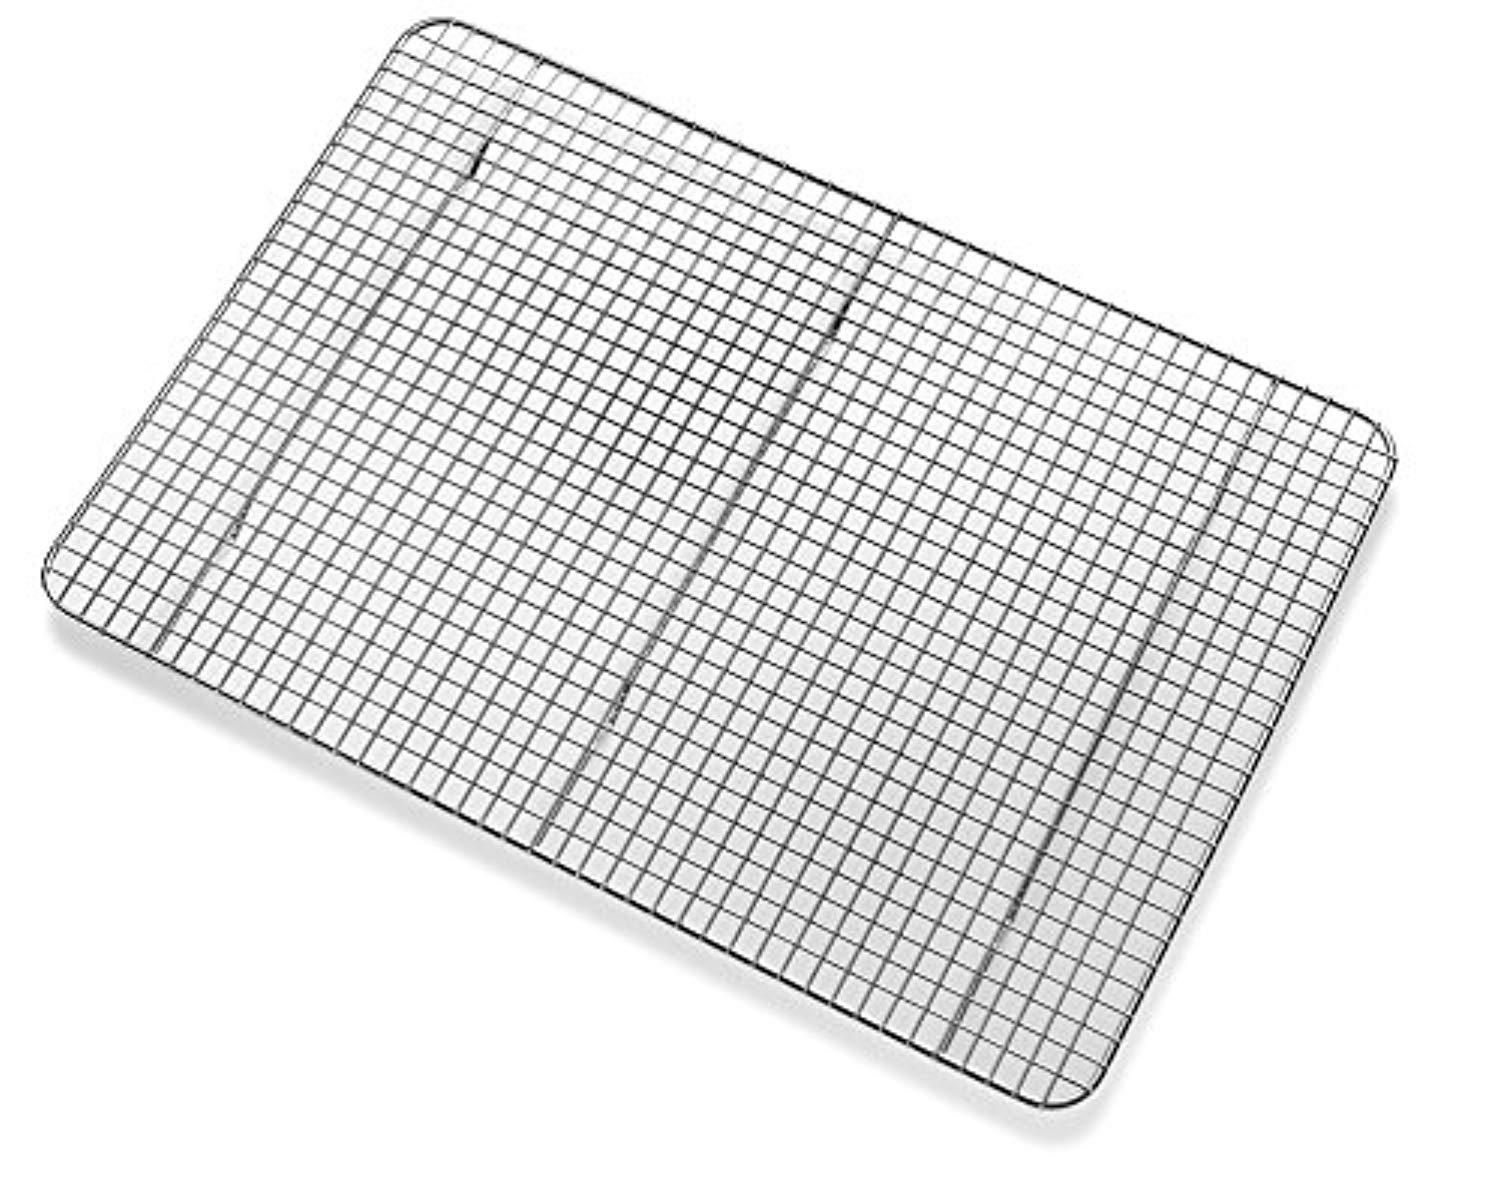 Top Rated Bellemain Cooling Rack Baking Rack Chef Quality 12 Inch X 17 Inch Tight Grid Design Oven Safe Fits